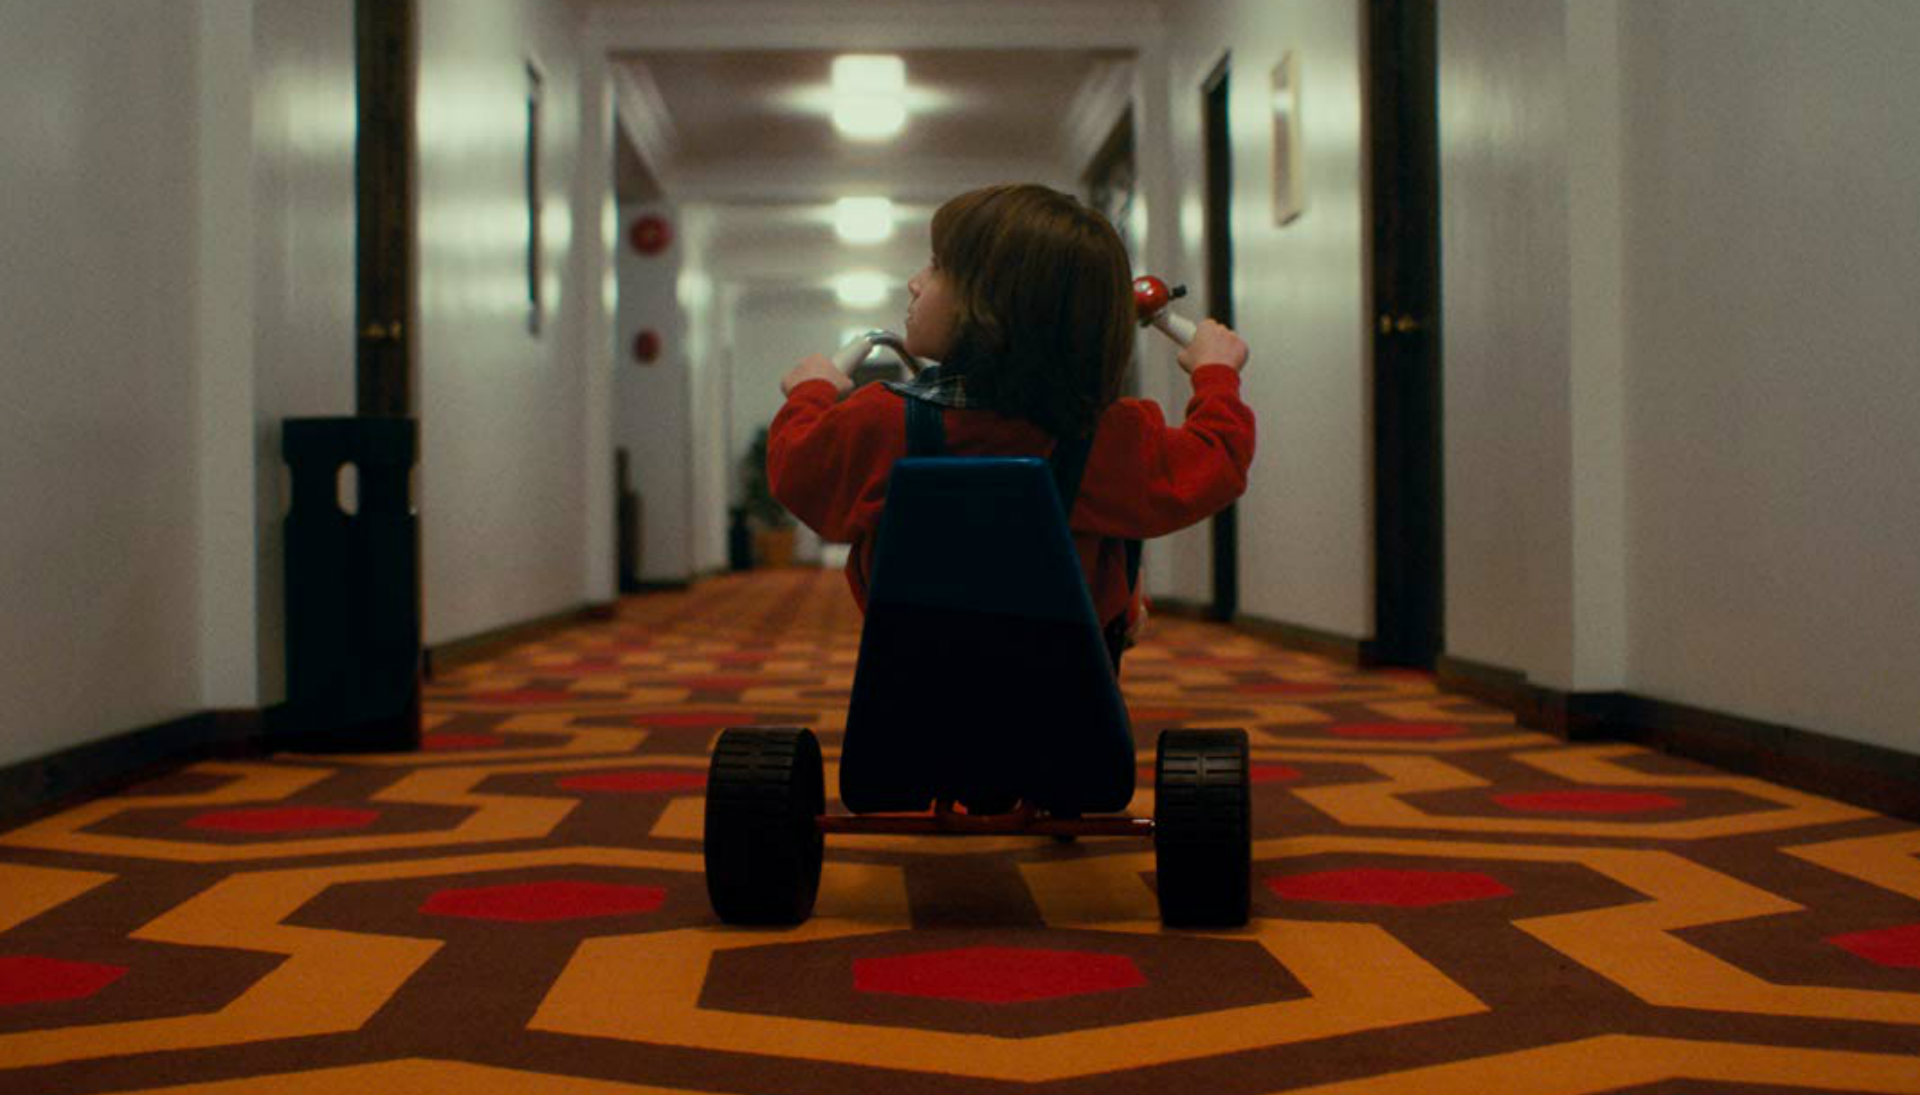 Doctor Sleep Explores The Shining's Mythology in Thrilling New Ways